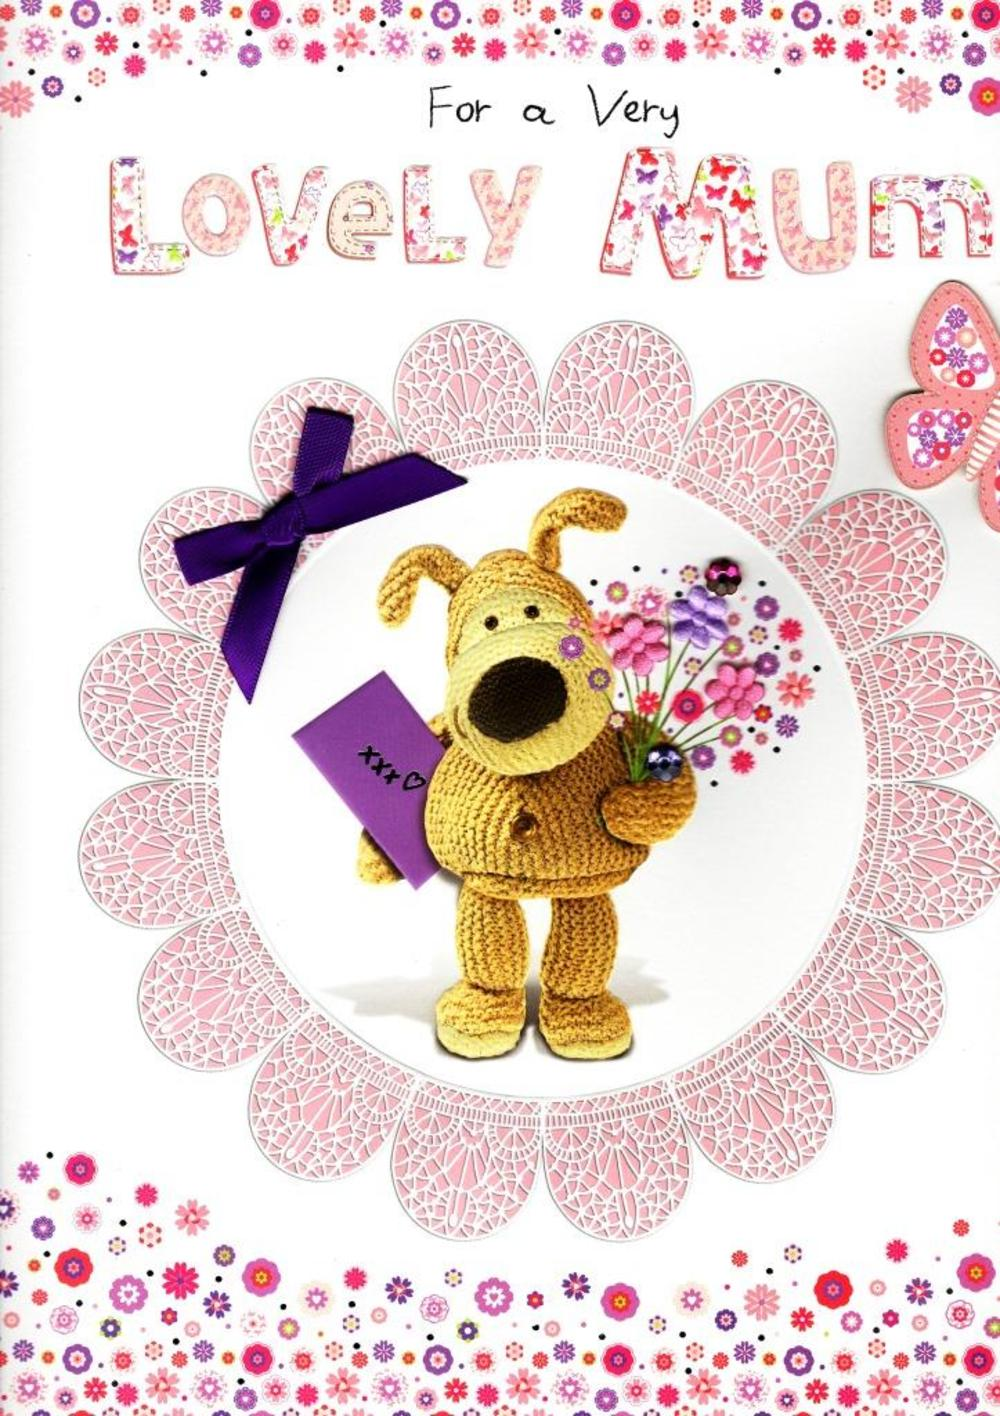 Boofle Boxed Lovely Mum Happy Mother's Day Card